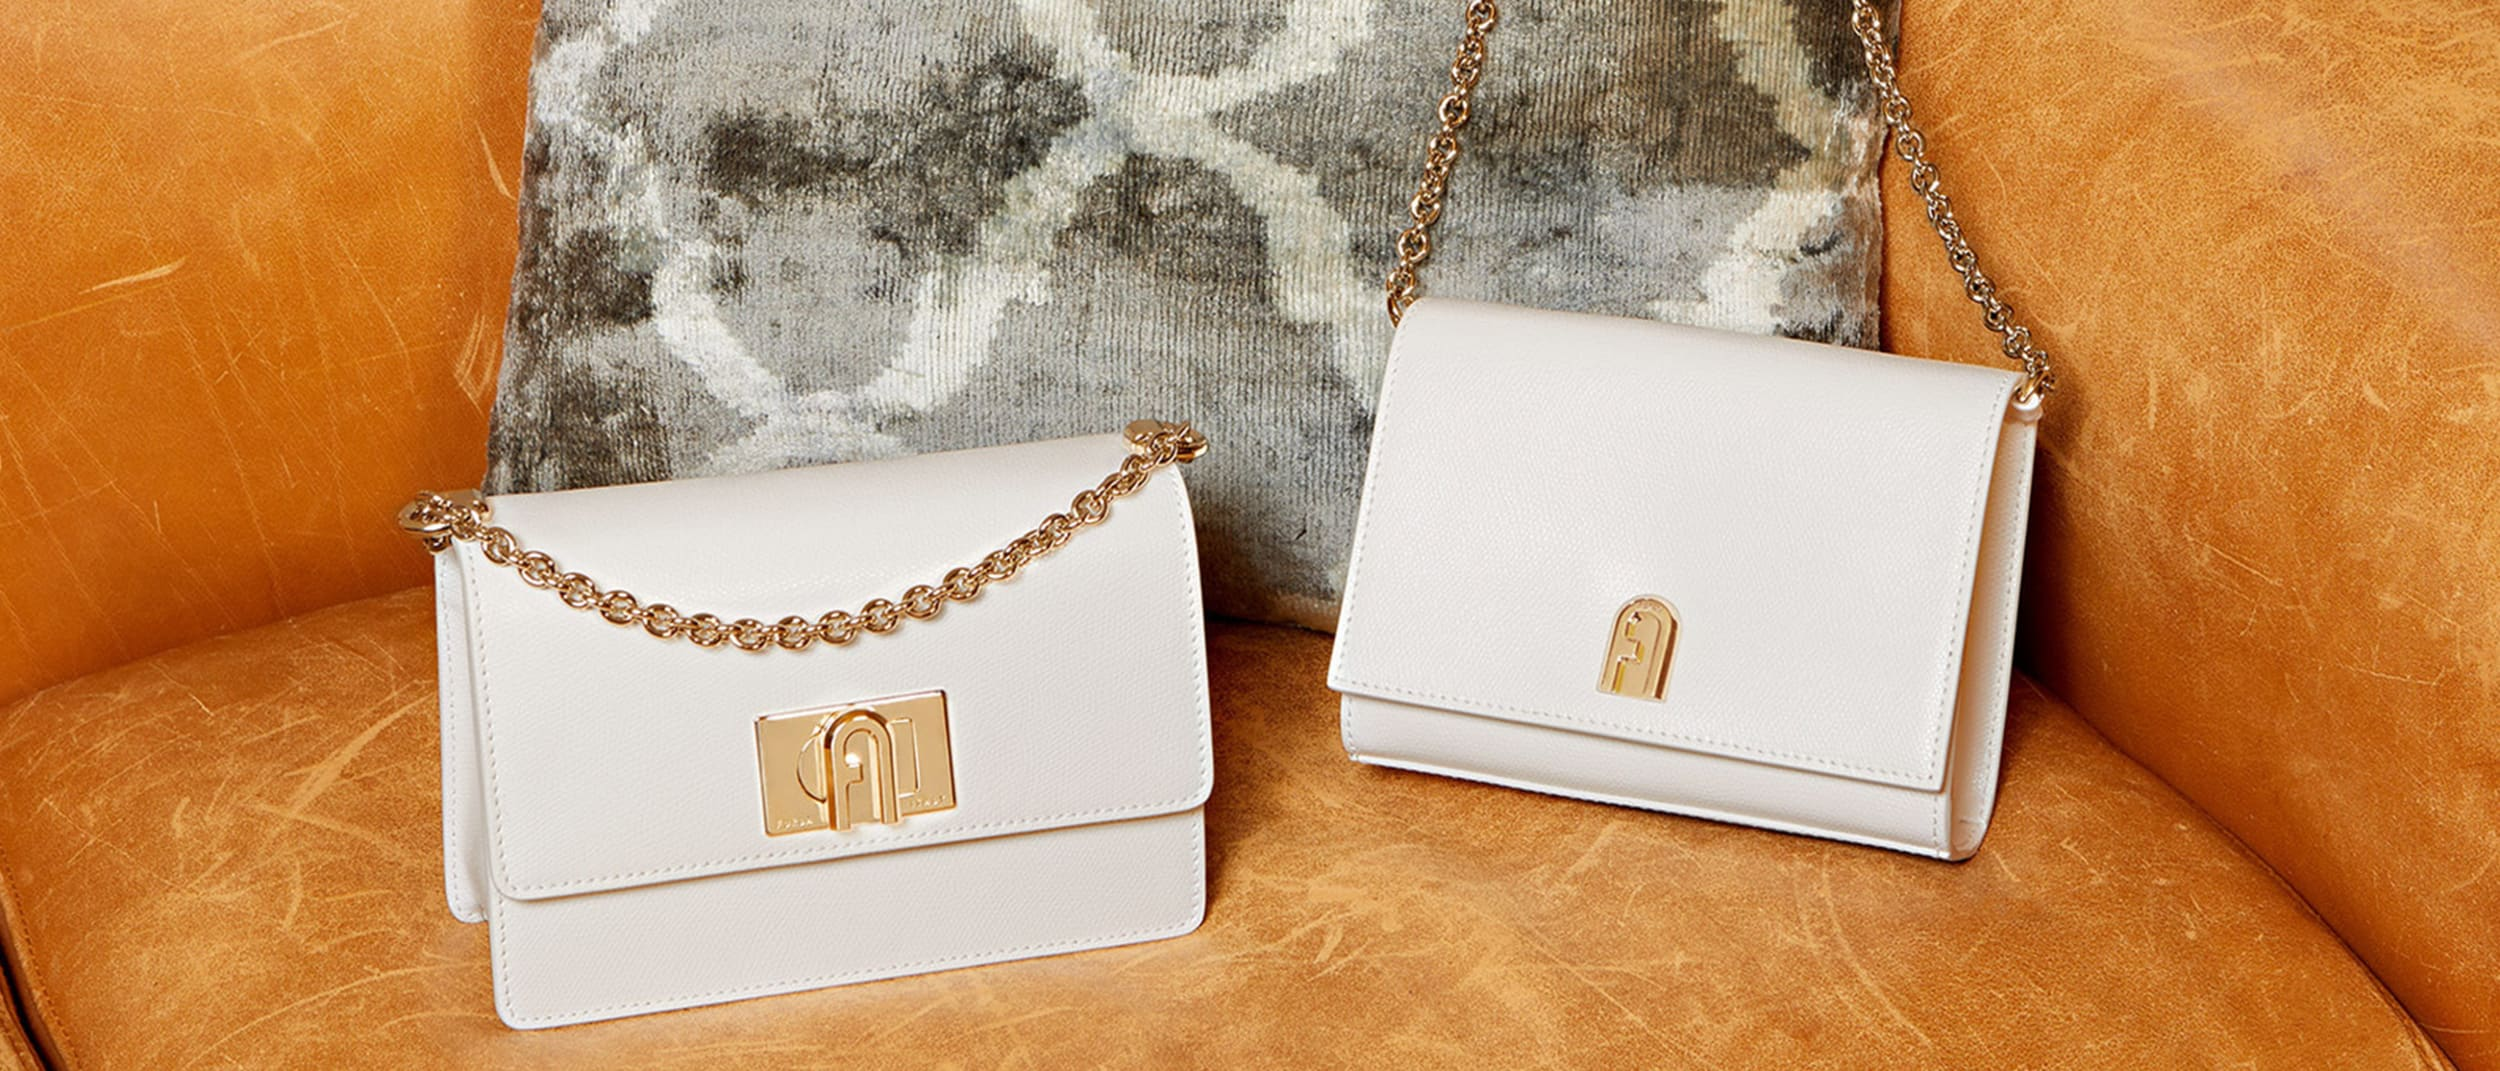 Discover the new Furla Cruise 2020 Collection